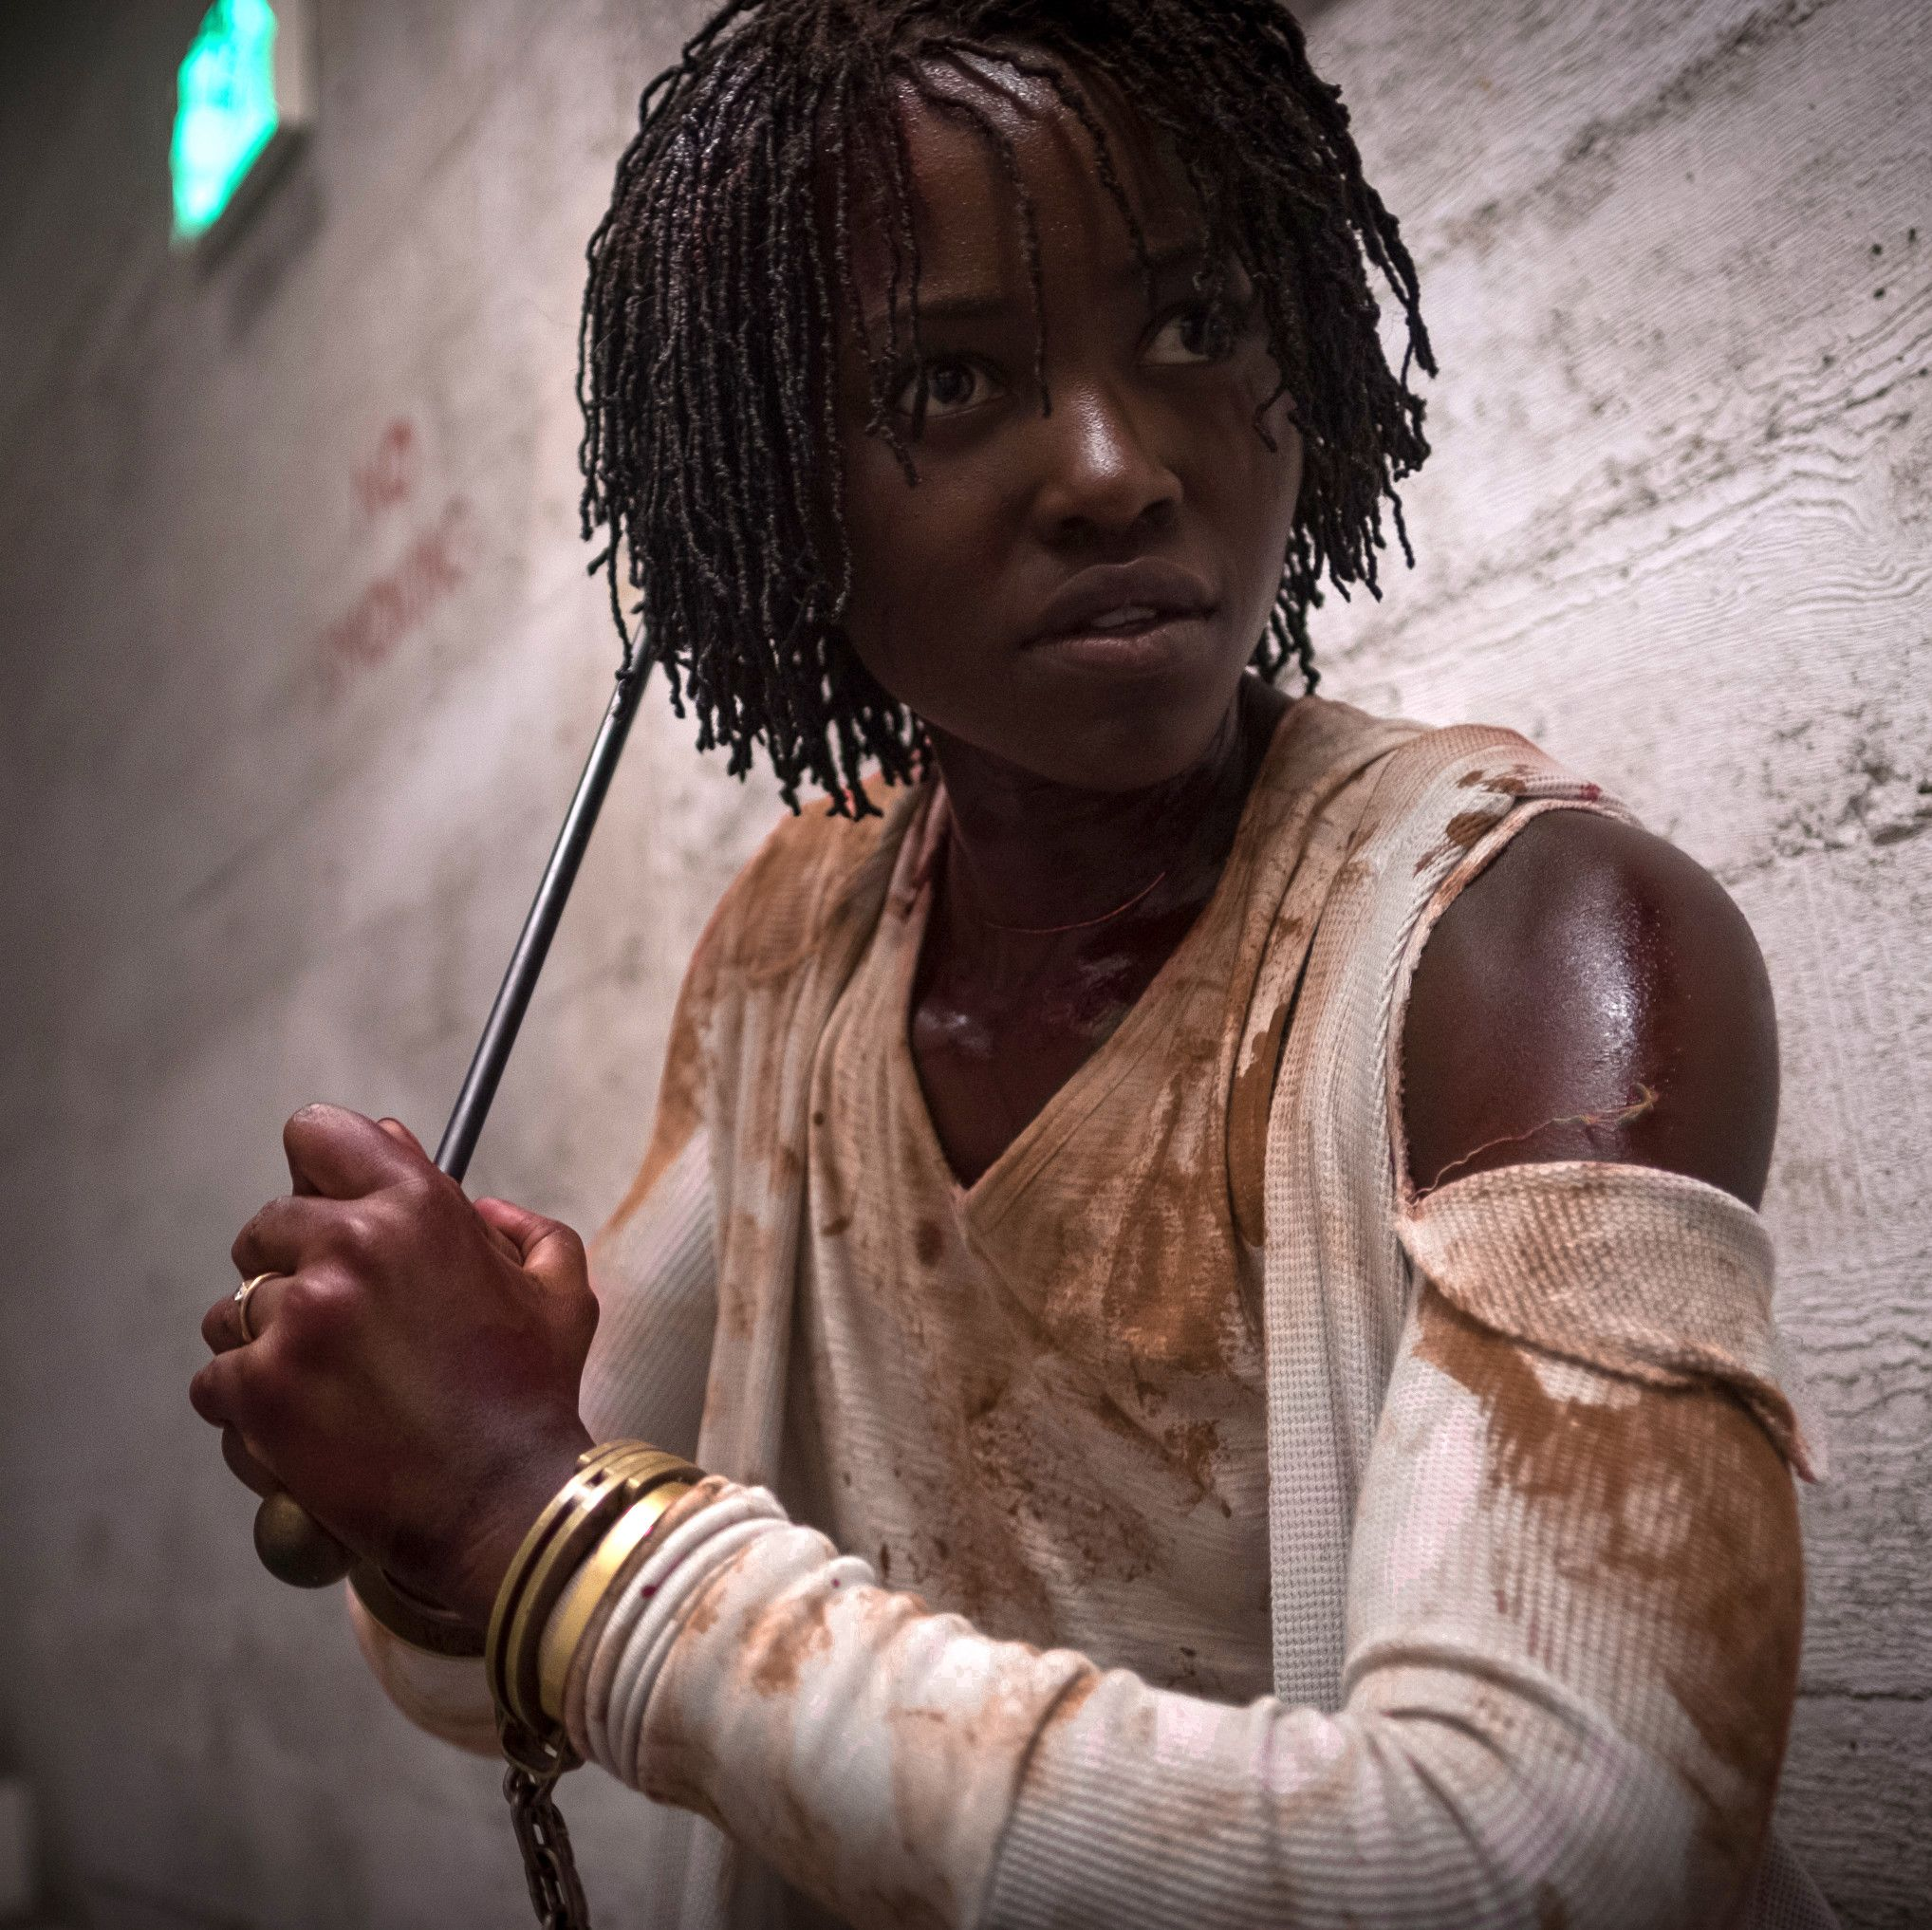 Jordan Peele's 'Us' Is a Terrifying Look at the Horror Beneath the Surface